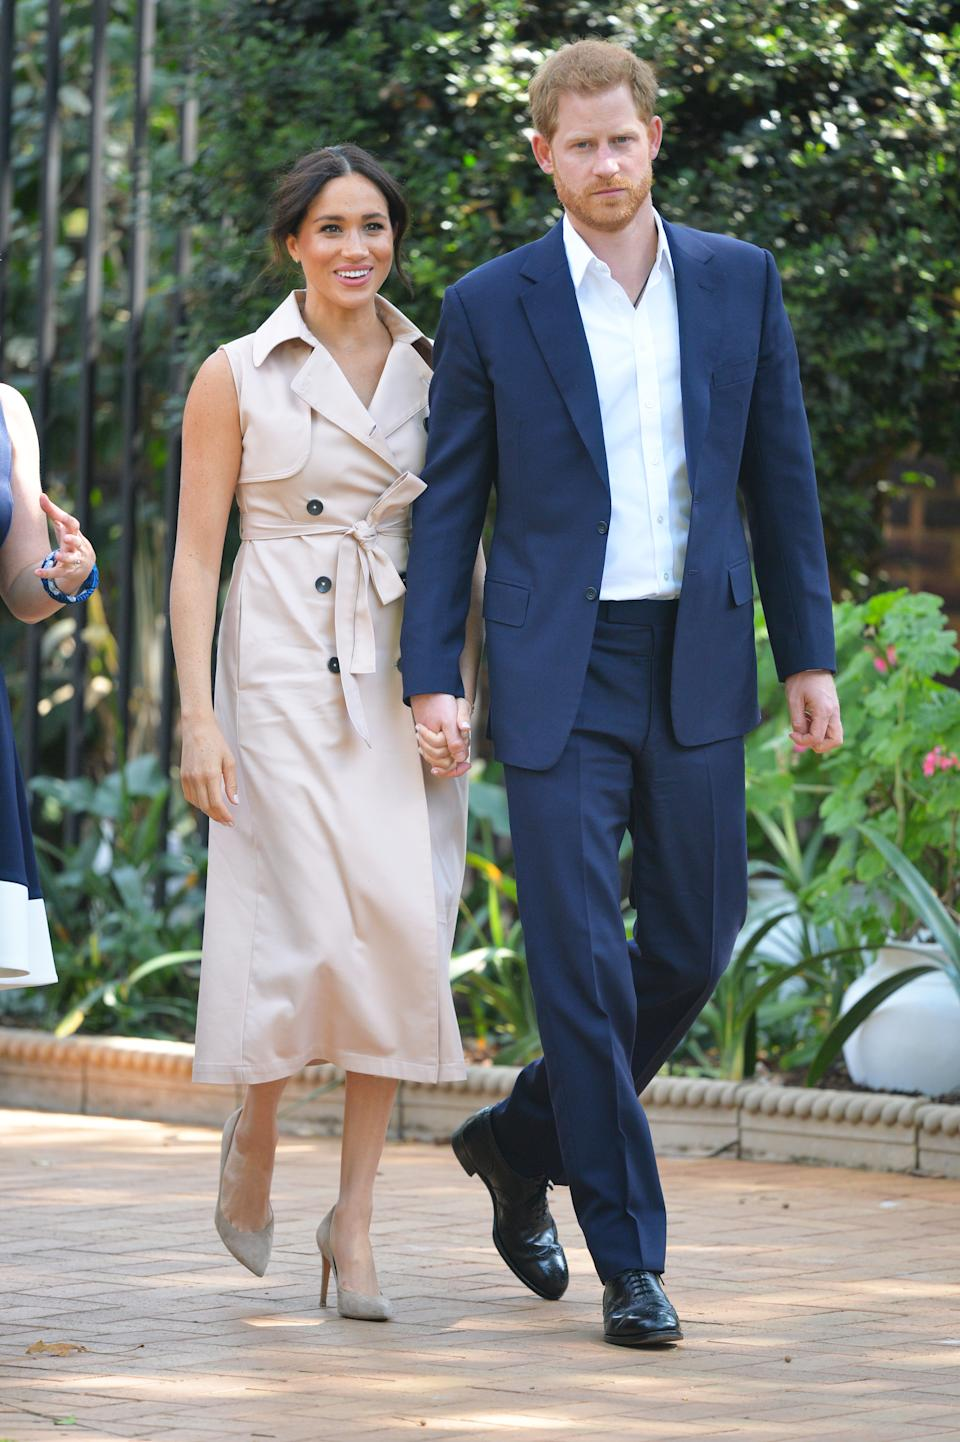 """Meghan's afternoon began meeting Graca Machel, widow of the late Nelson Mandela. Poignantly, Meghan chose to rewear her <a href=""""https://www.houseofnonie.com/store/p80/Sleeveless_Trench.html?"""" rel=""""nofollow noopener"""" target=""""_blank"""" data-ylk=""""slk:House of Nonie"""" class=""""link rapid-noclick-resp"""">House of Nonie</a> sleeveless trench dress, which she first wore in 2018 to visit the Nelson Mandela Centenary Exhibition. <em>[Photo: Getty]</em>"""